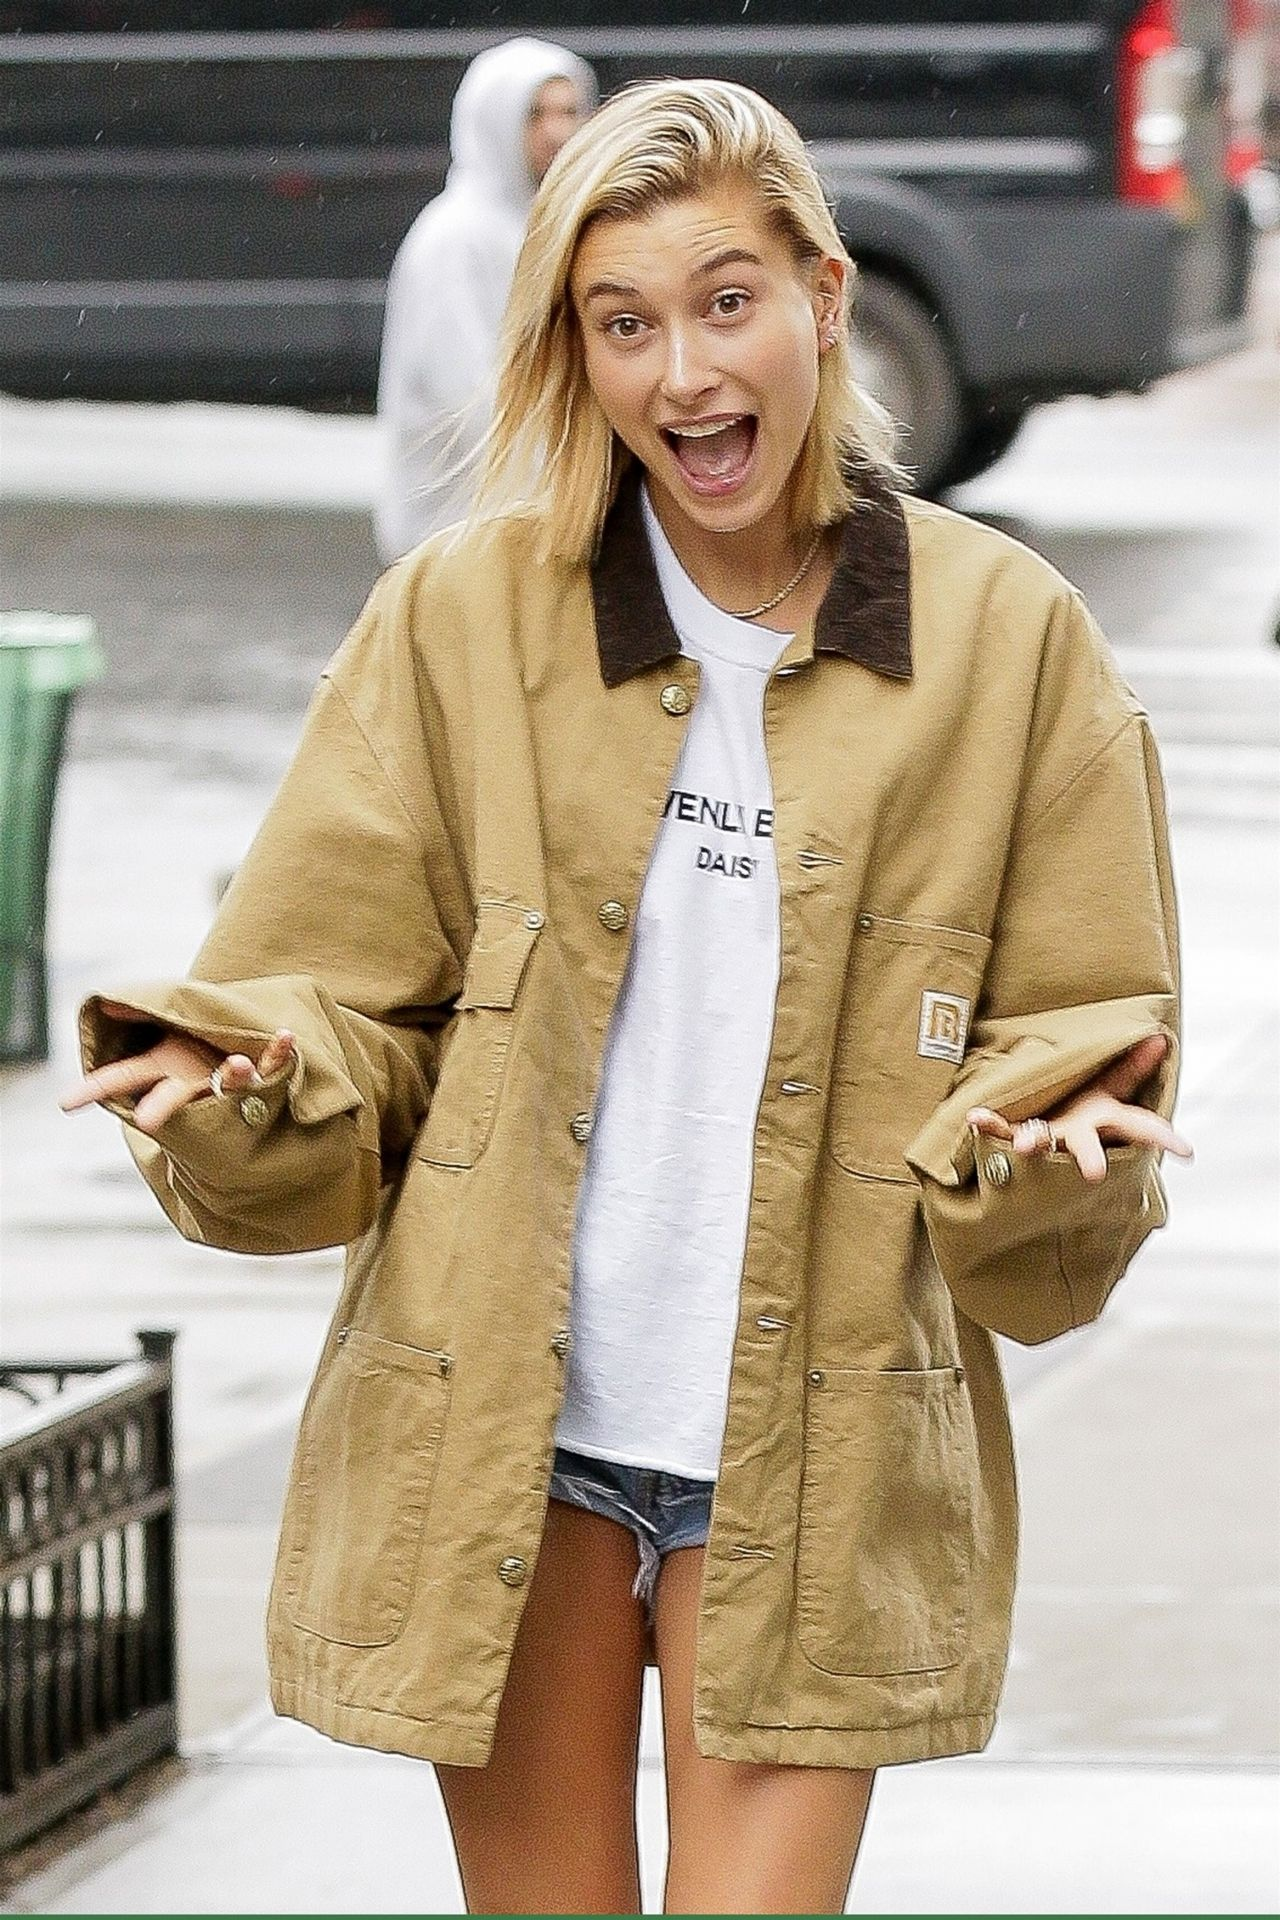 Hailey Baldwin And Justin Bieber Have Fun With The Cameras Out In Nyc 06 13 2018